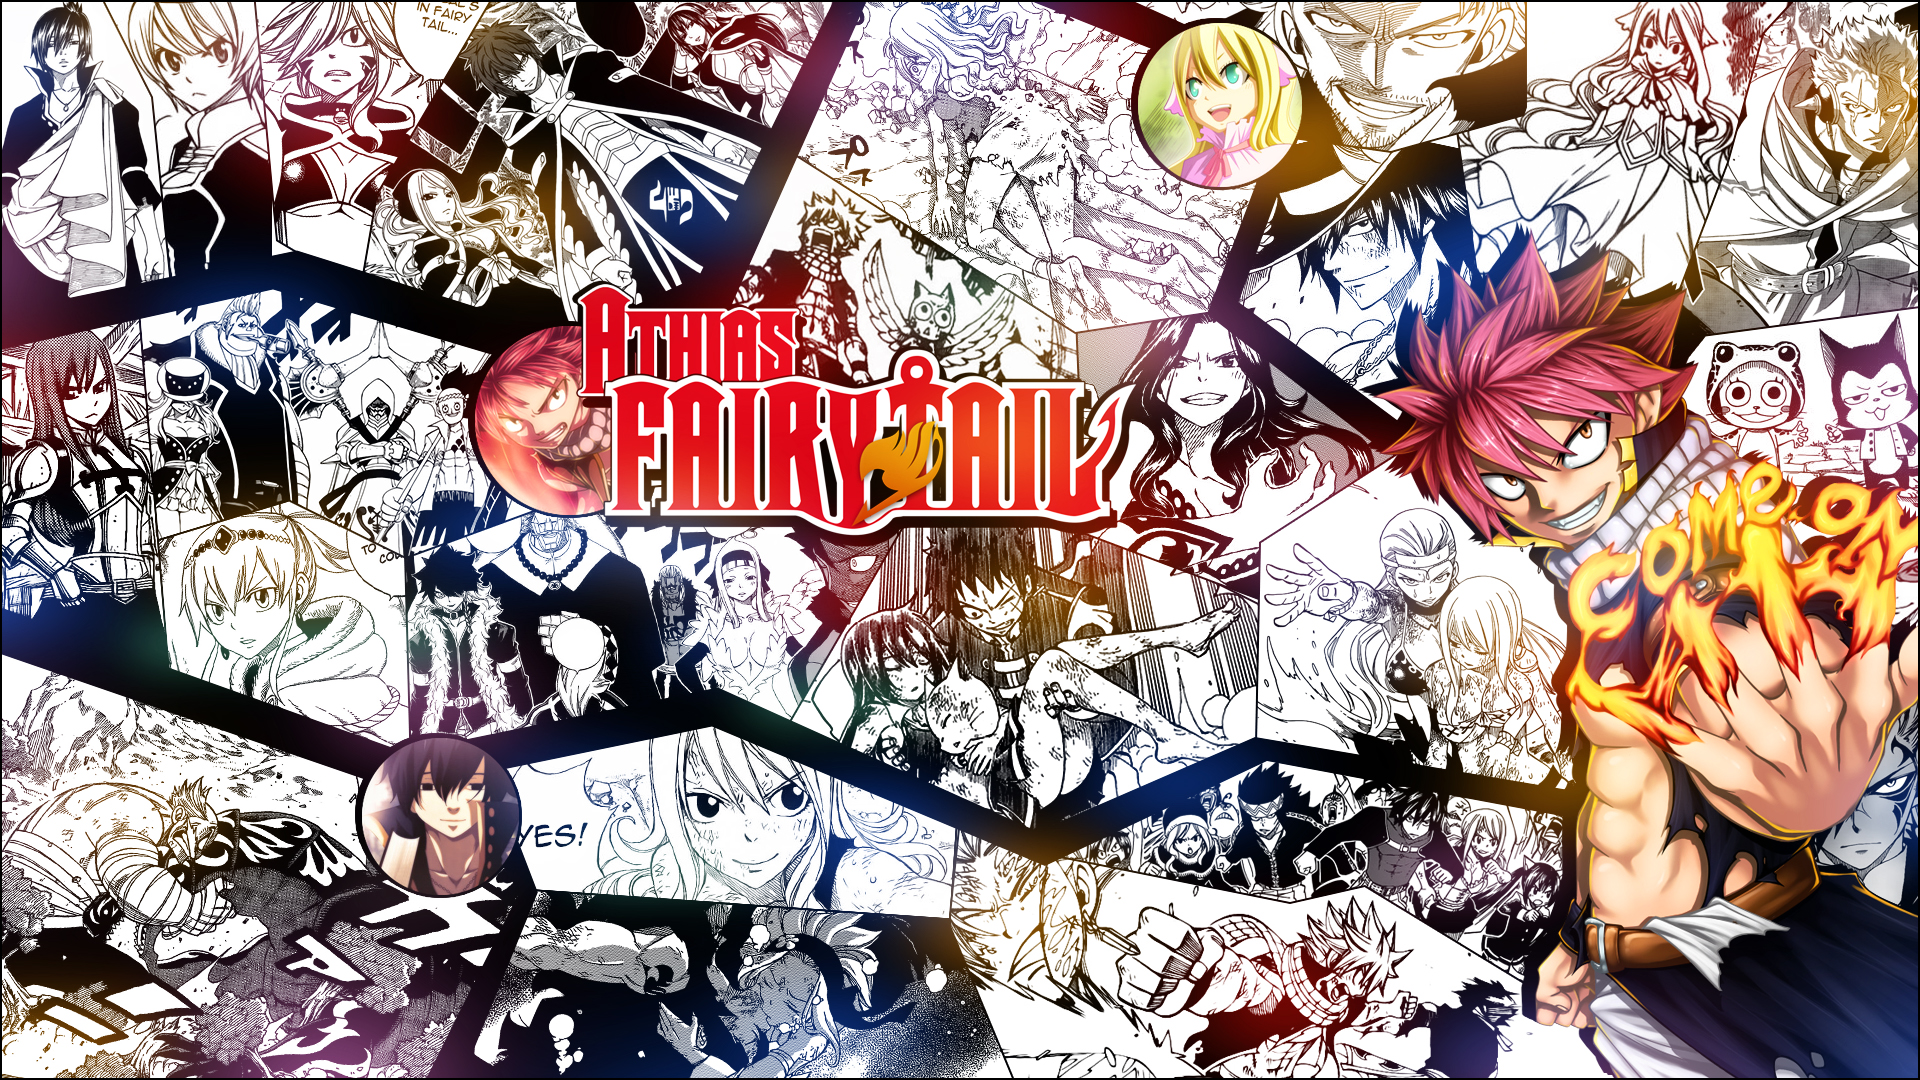 Fairy Tail Hd Wallpaper Background Image 1920x1080 Id 735710